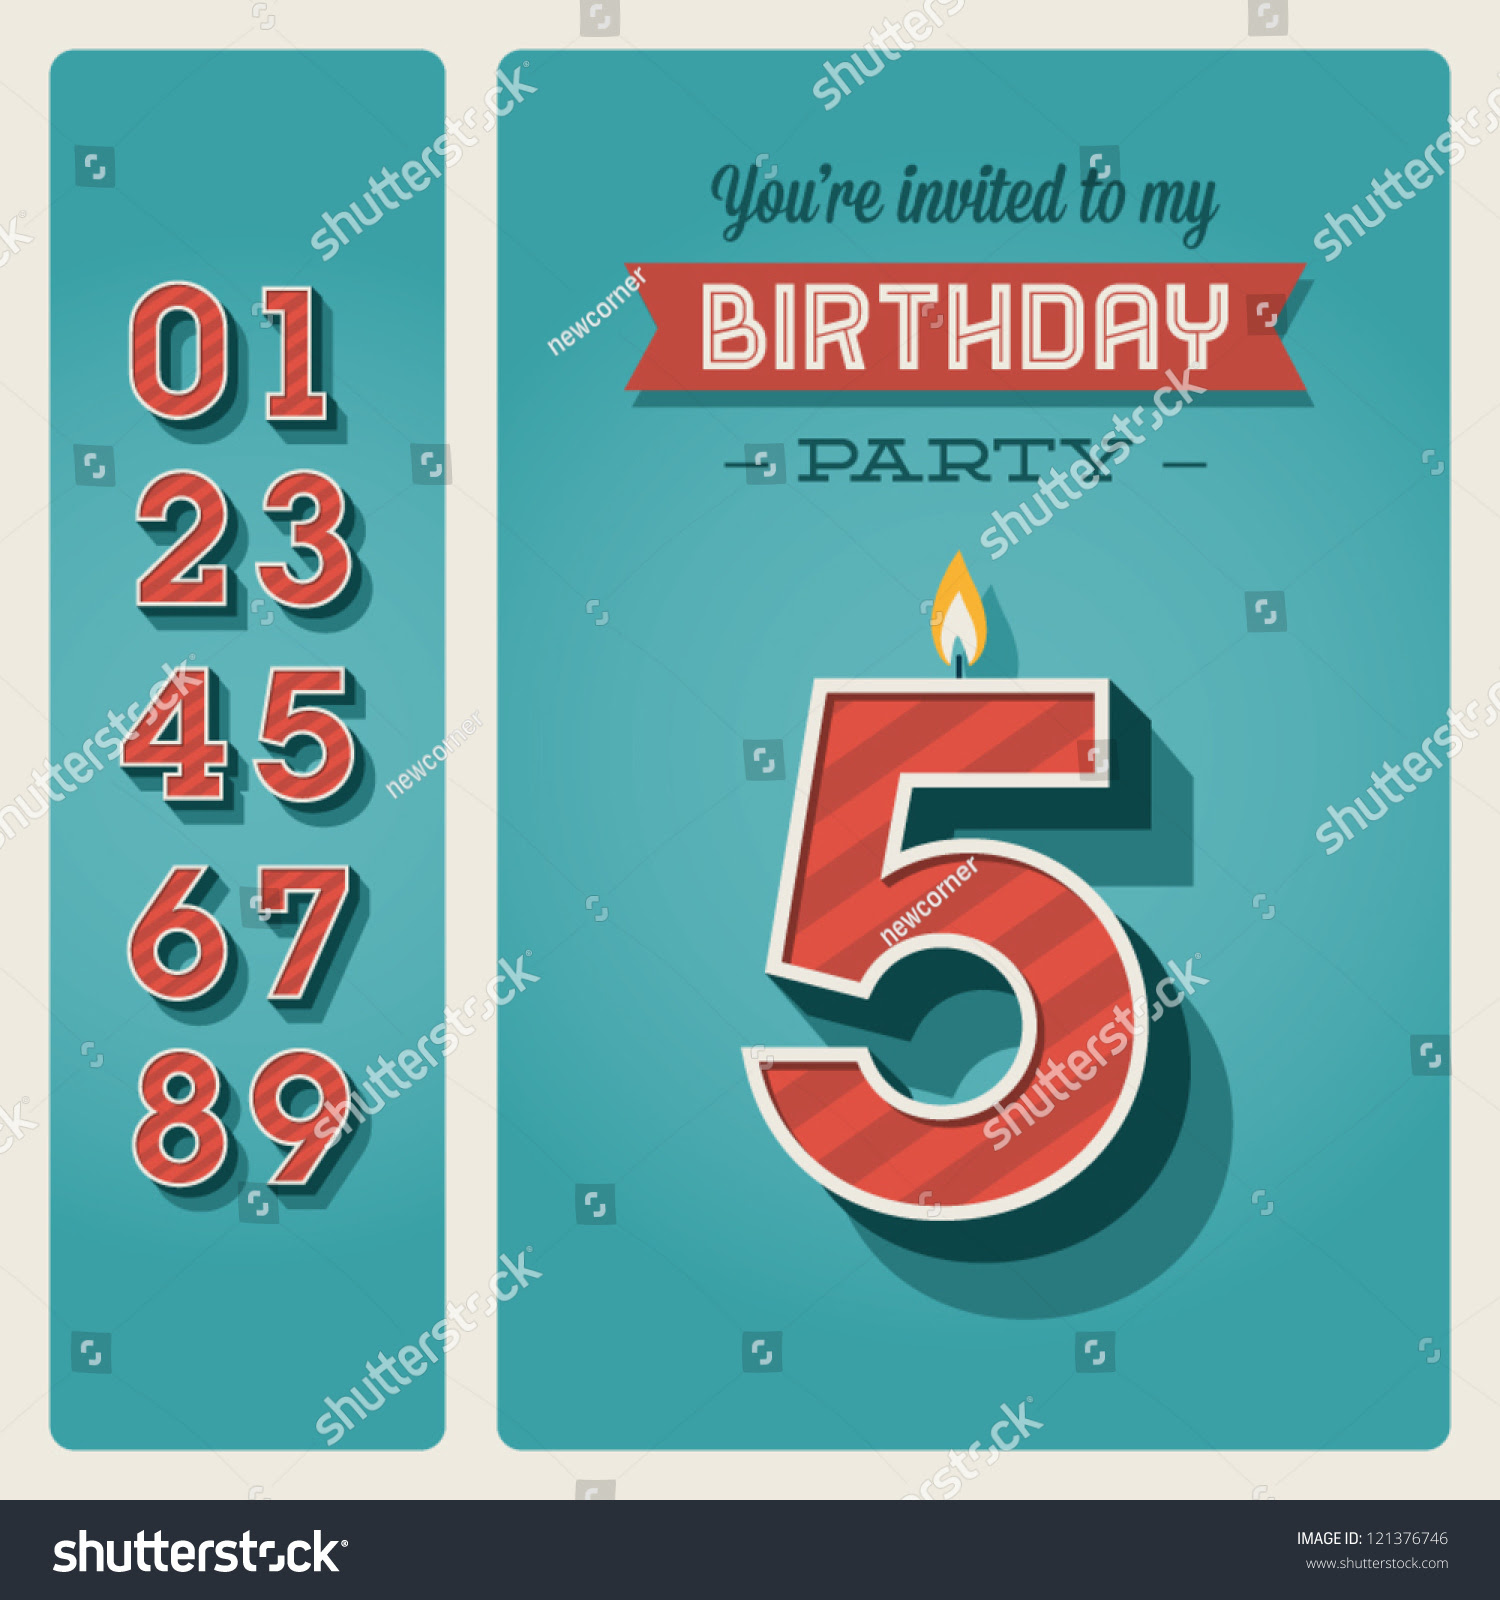 Happy Birthday Card Invitation Candle Number Stock Vector ...